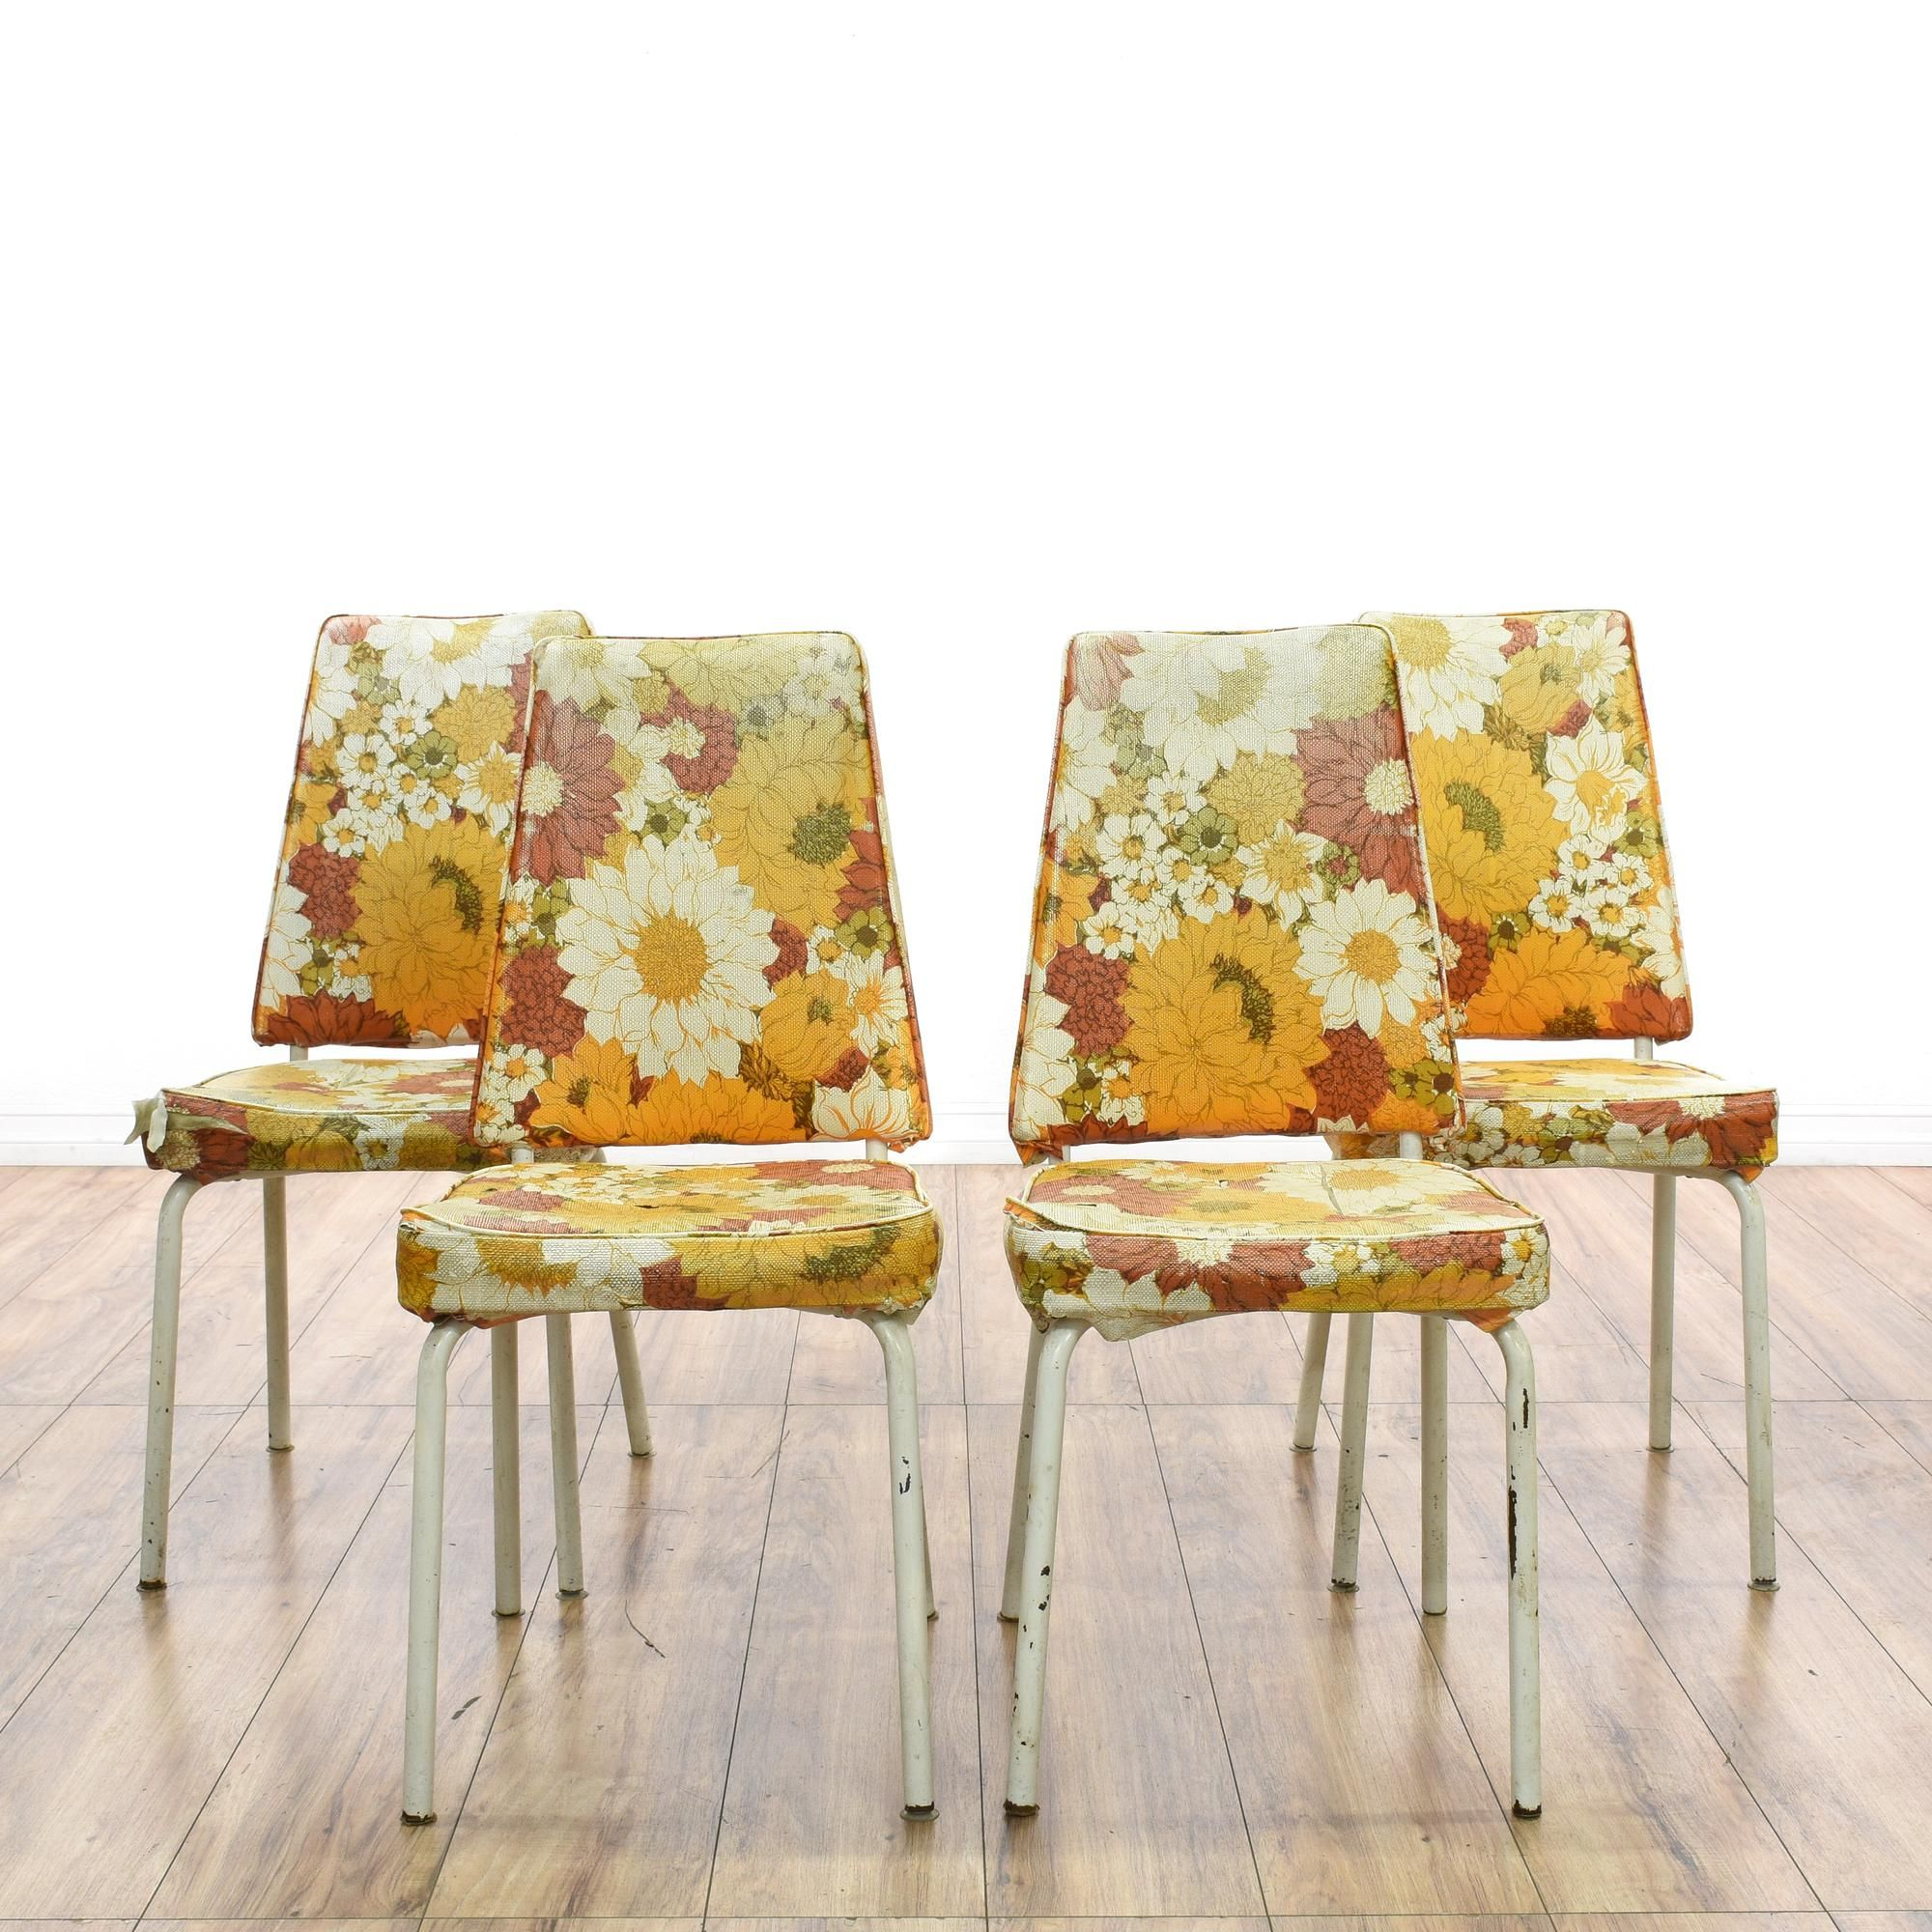 Awesome This Set Of 4 Kitchen Chairs Is Featured In A Shiny White Metal. Each  Mid Century Modern Style Dining Chair Has Orange Floral Upholstery With  Piping, ...